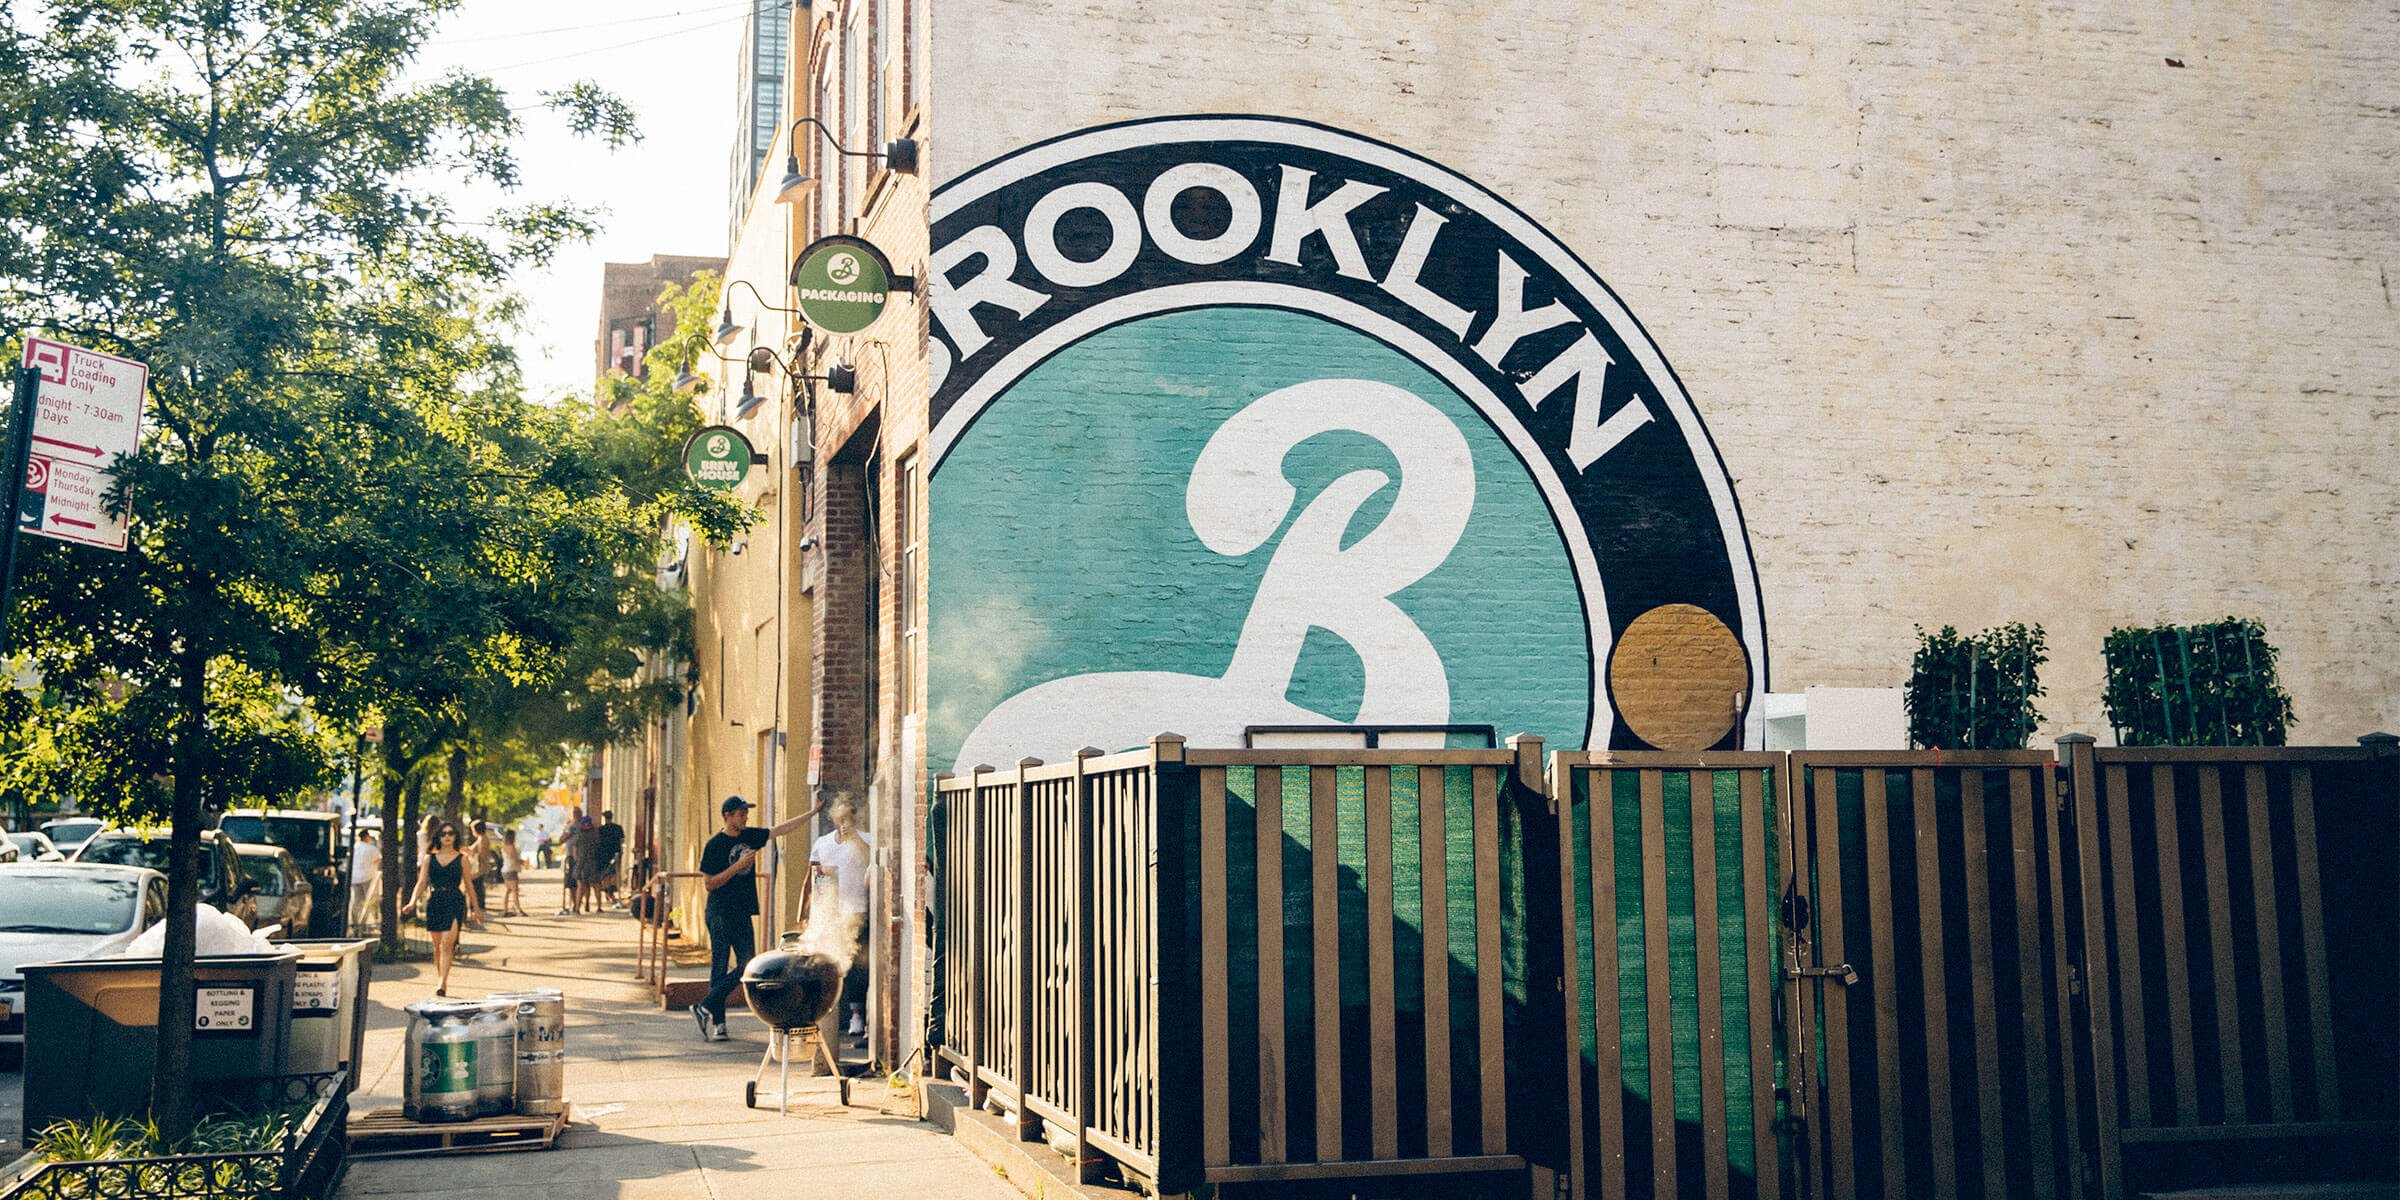 Outside the Brooklyn Brewery in Brooklyn, New York